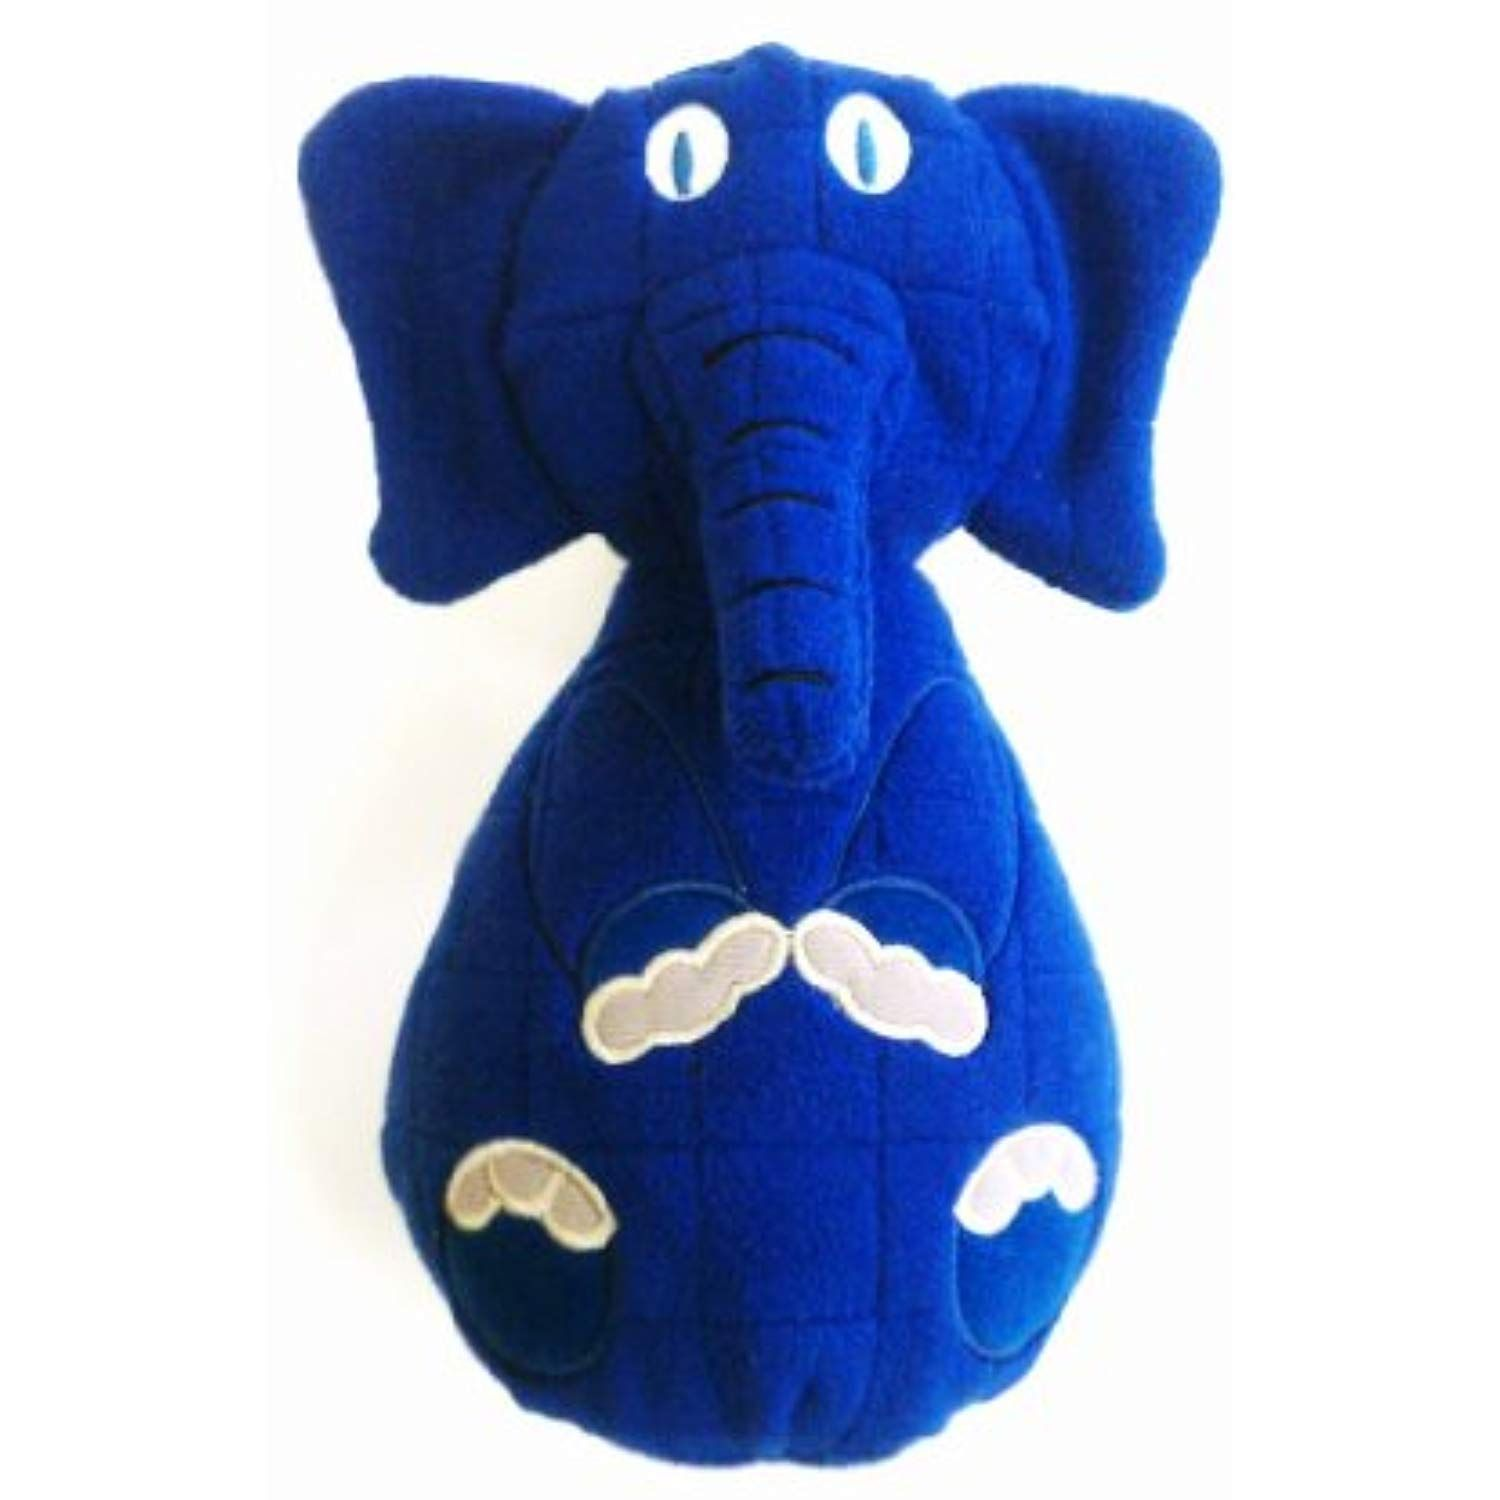 Tuff Enuff Wobbles 8 Inch Elephant Toy For Dogs Large Blue